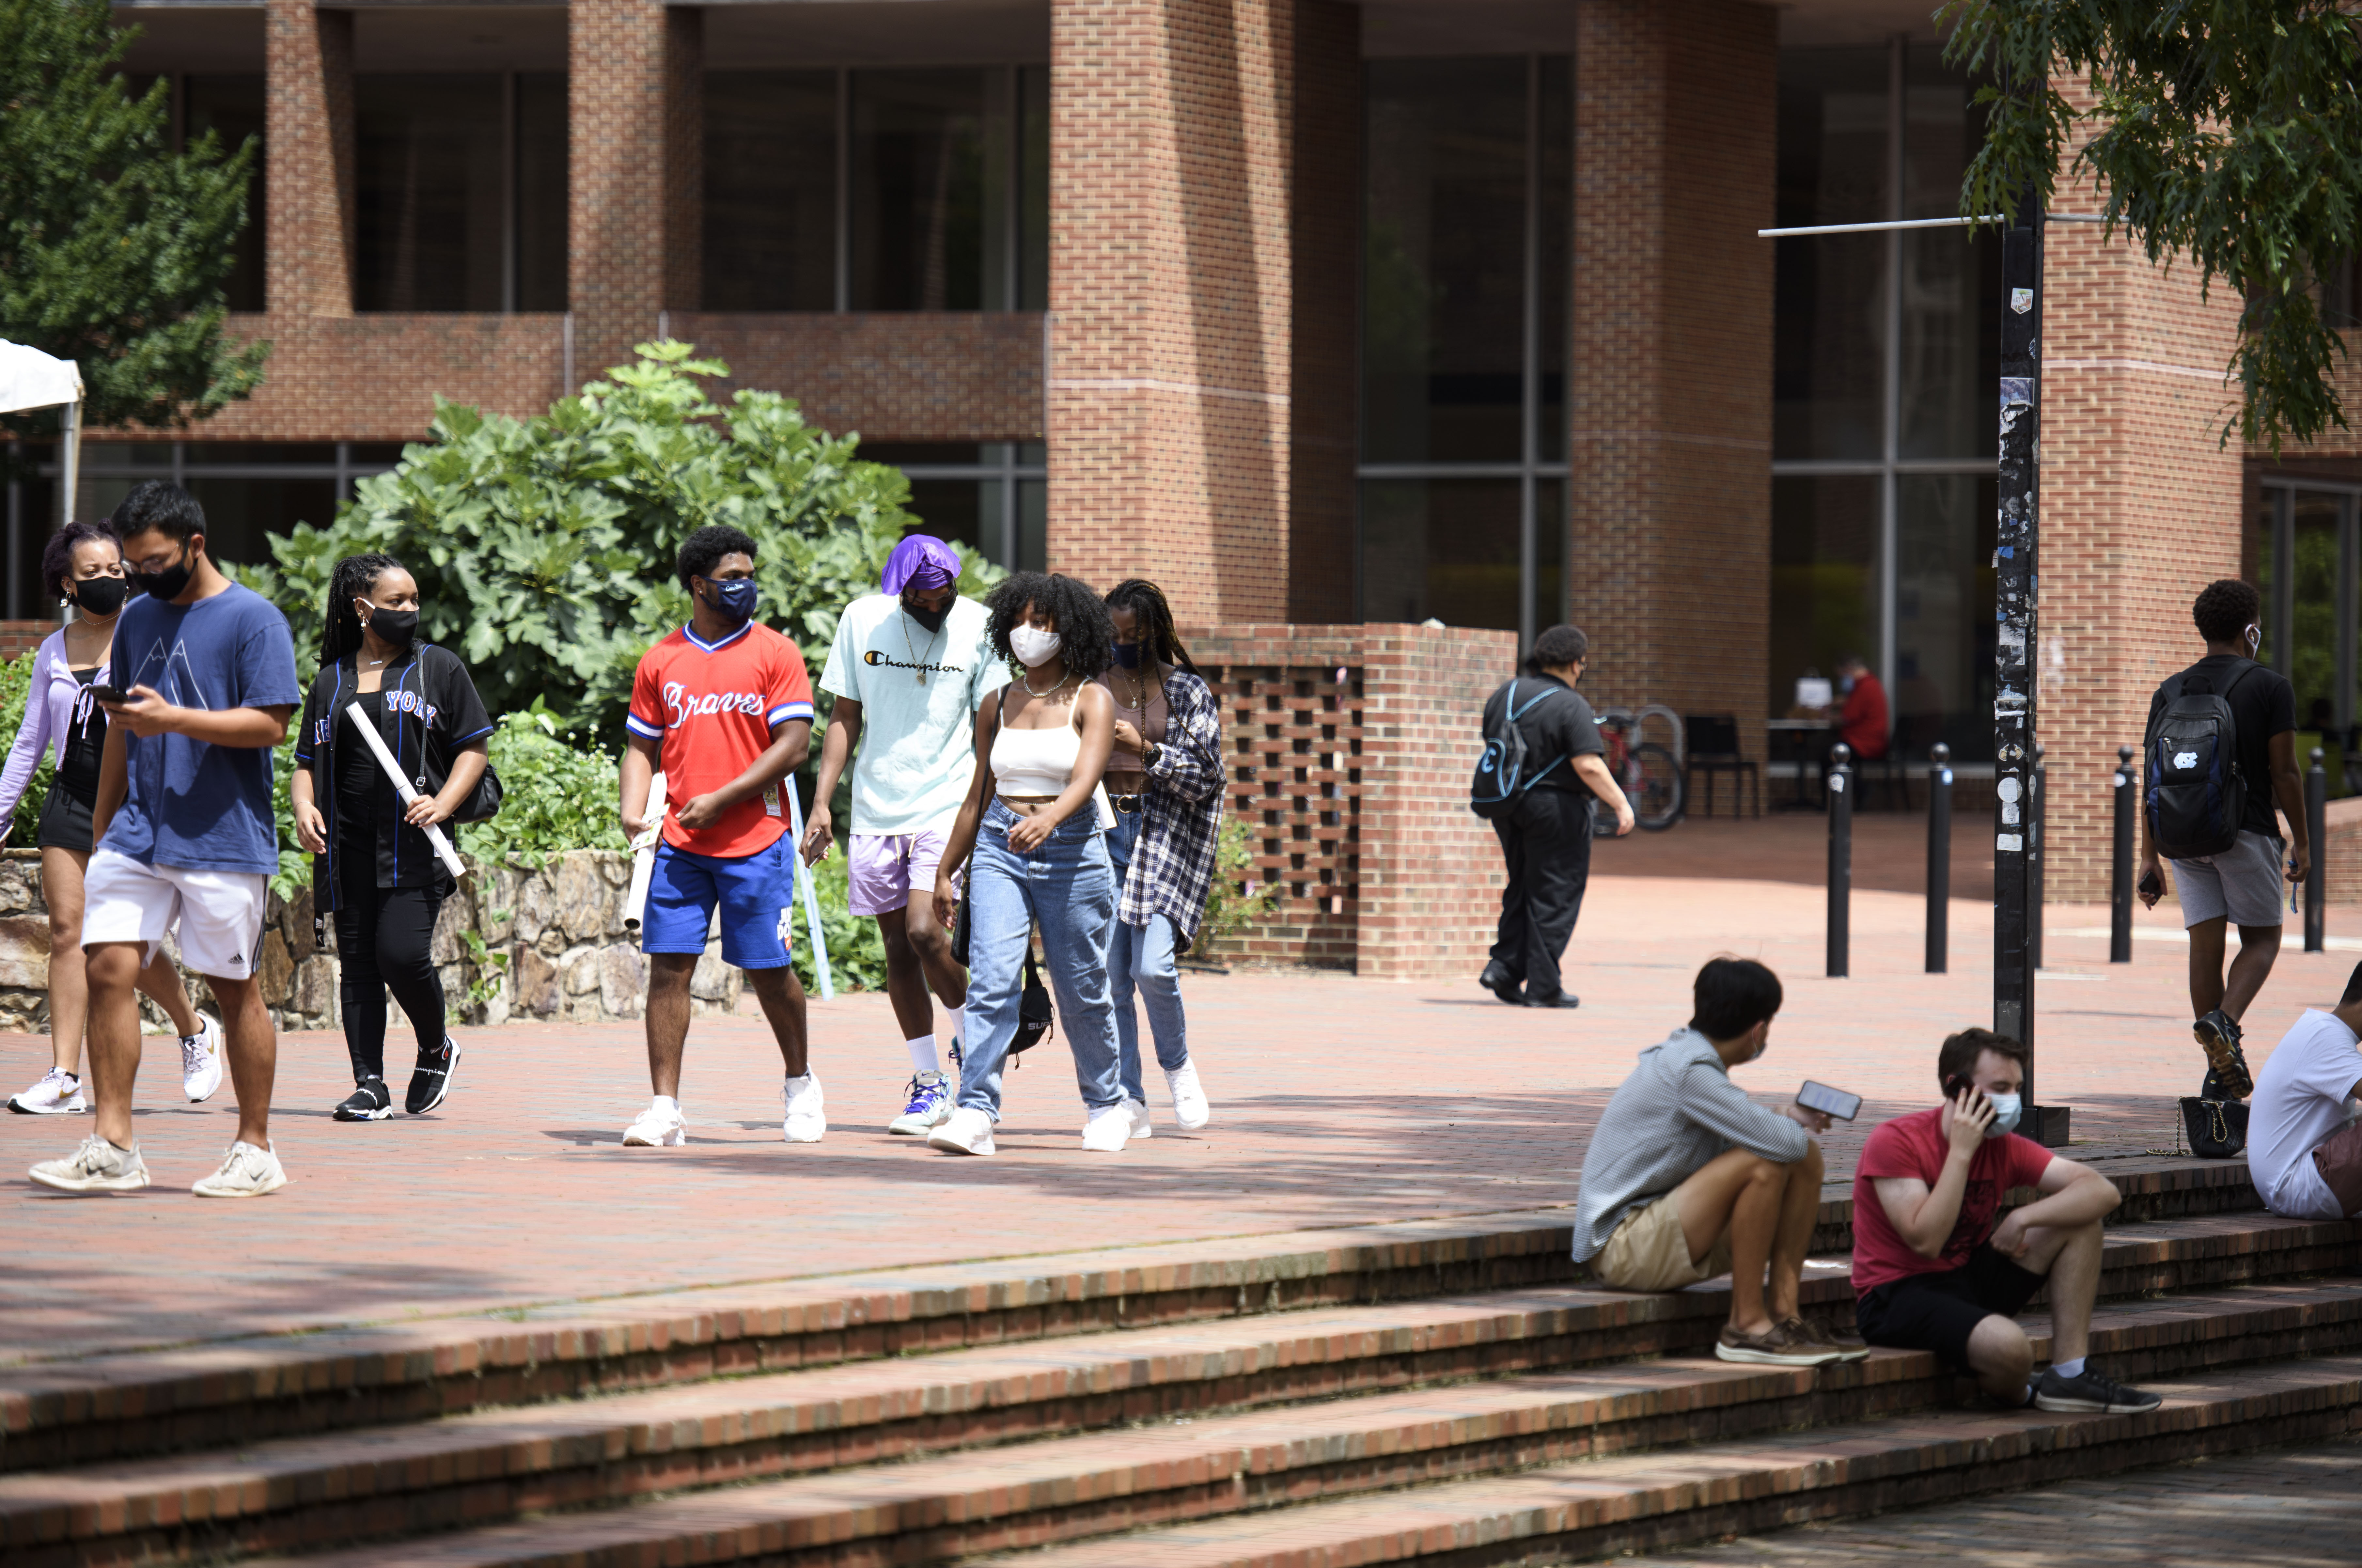 Small groups of students walk on a university campus plaza, with a building in the background. An handful of students sit on the steps of the plaza.